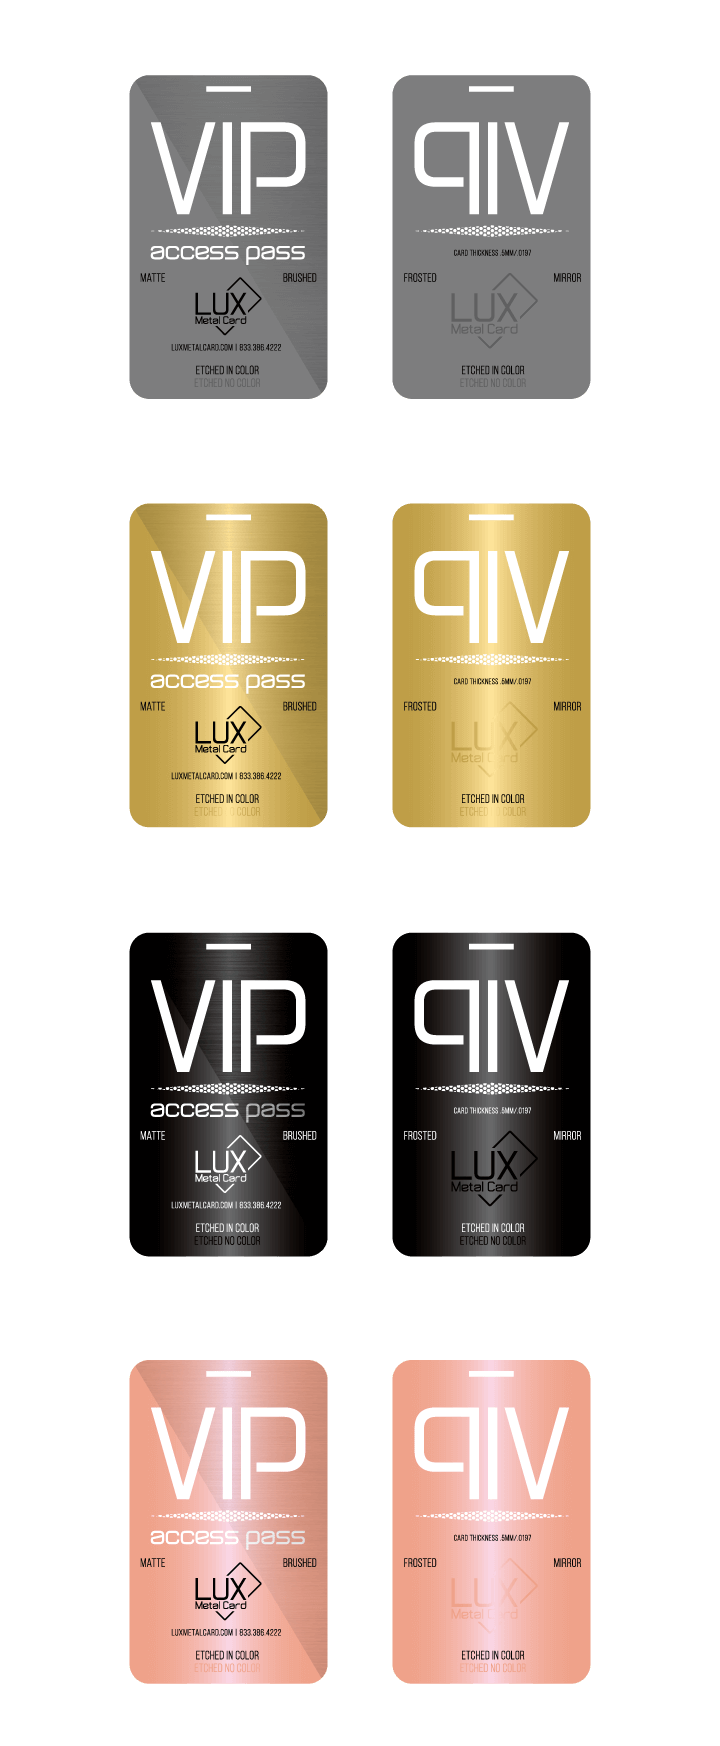 LUX Sample VIP Cards Graphic